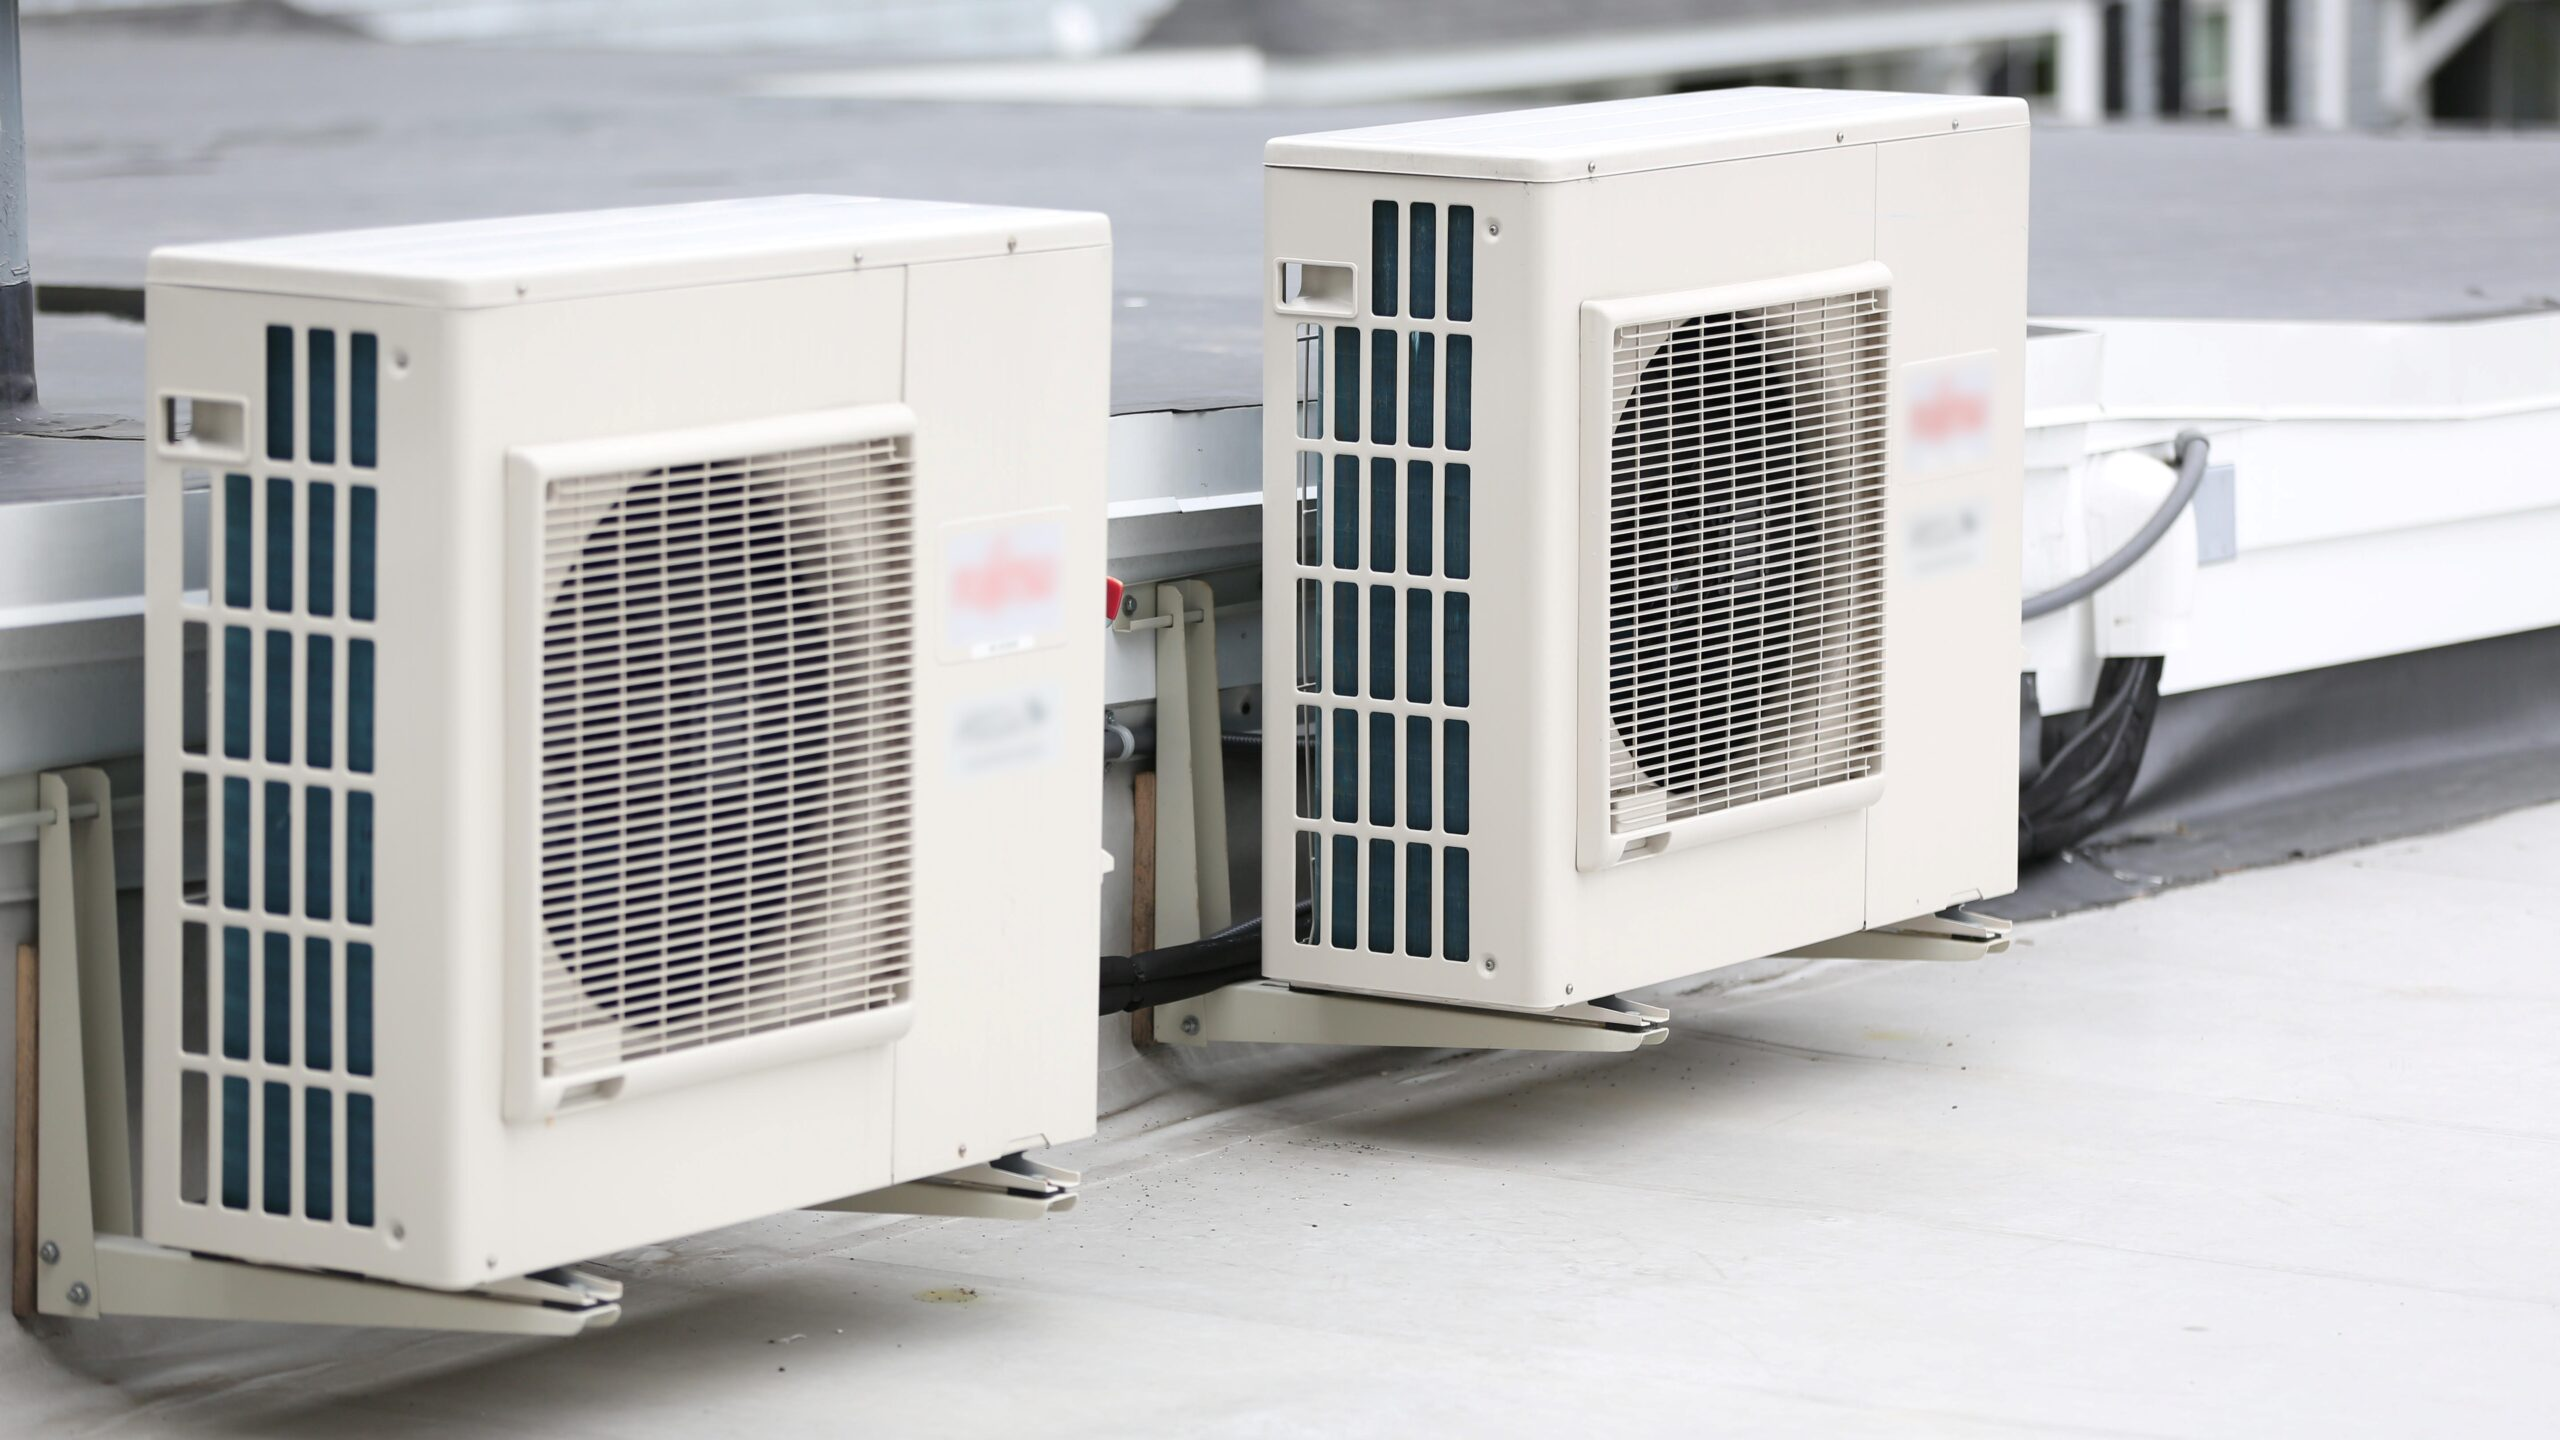 Upgrading Your Business's Heating, Ventilation, or Air Conditioning Can Help Cut Costs and Increase Comfort